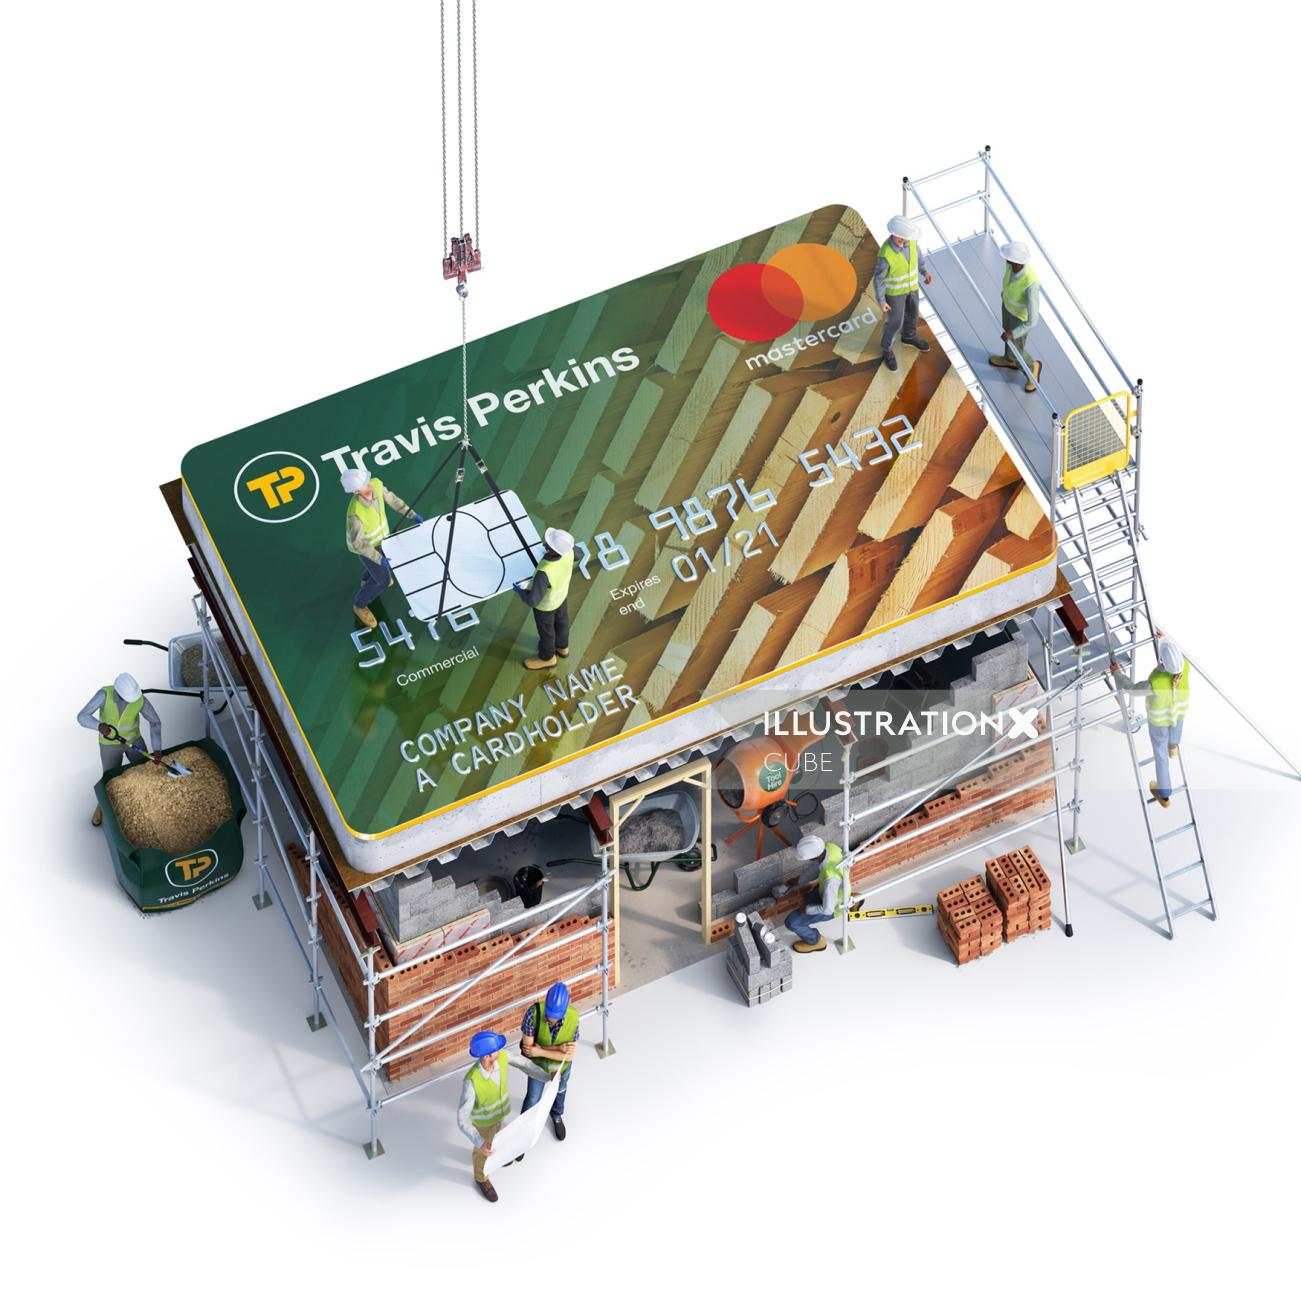 3D art for Travis Perkins credit card campaign